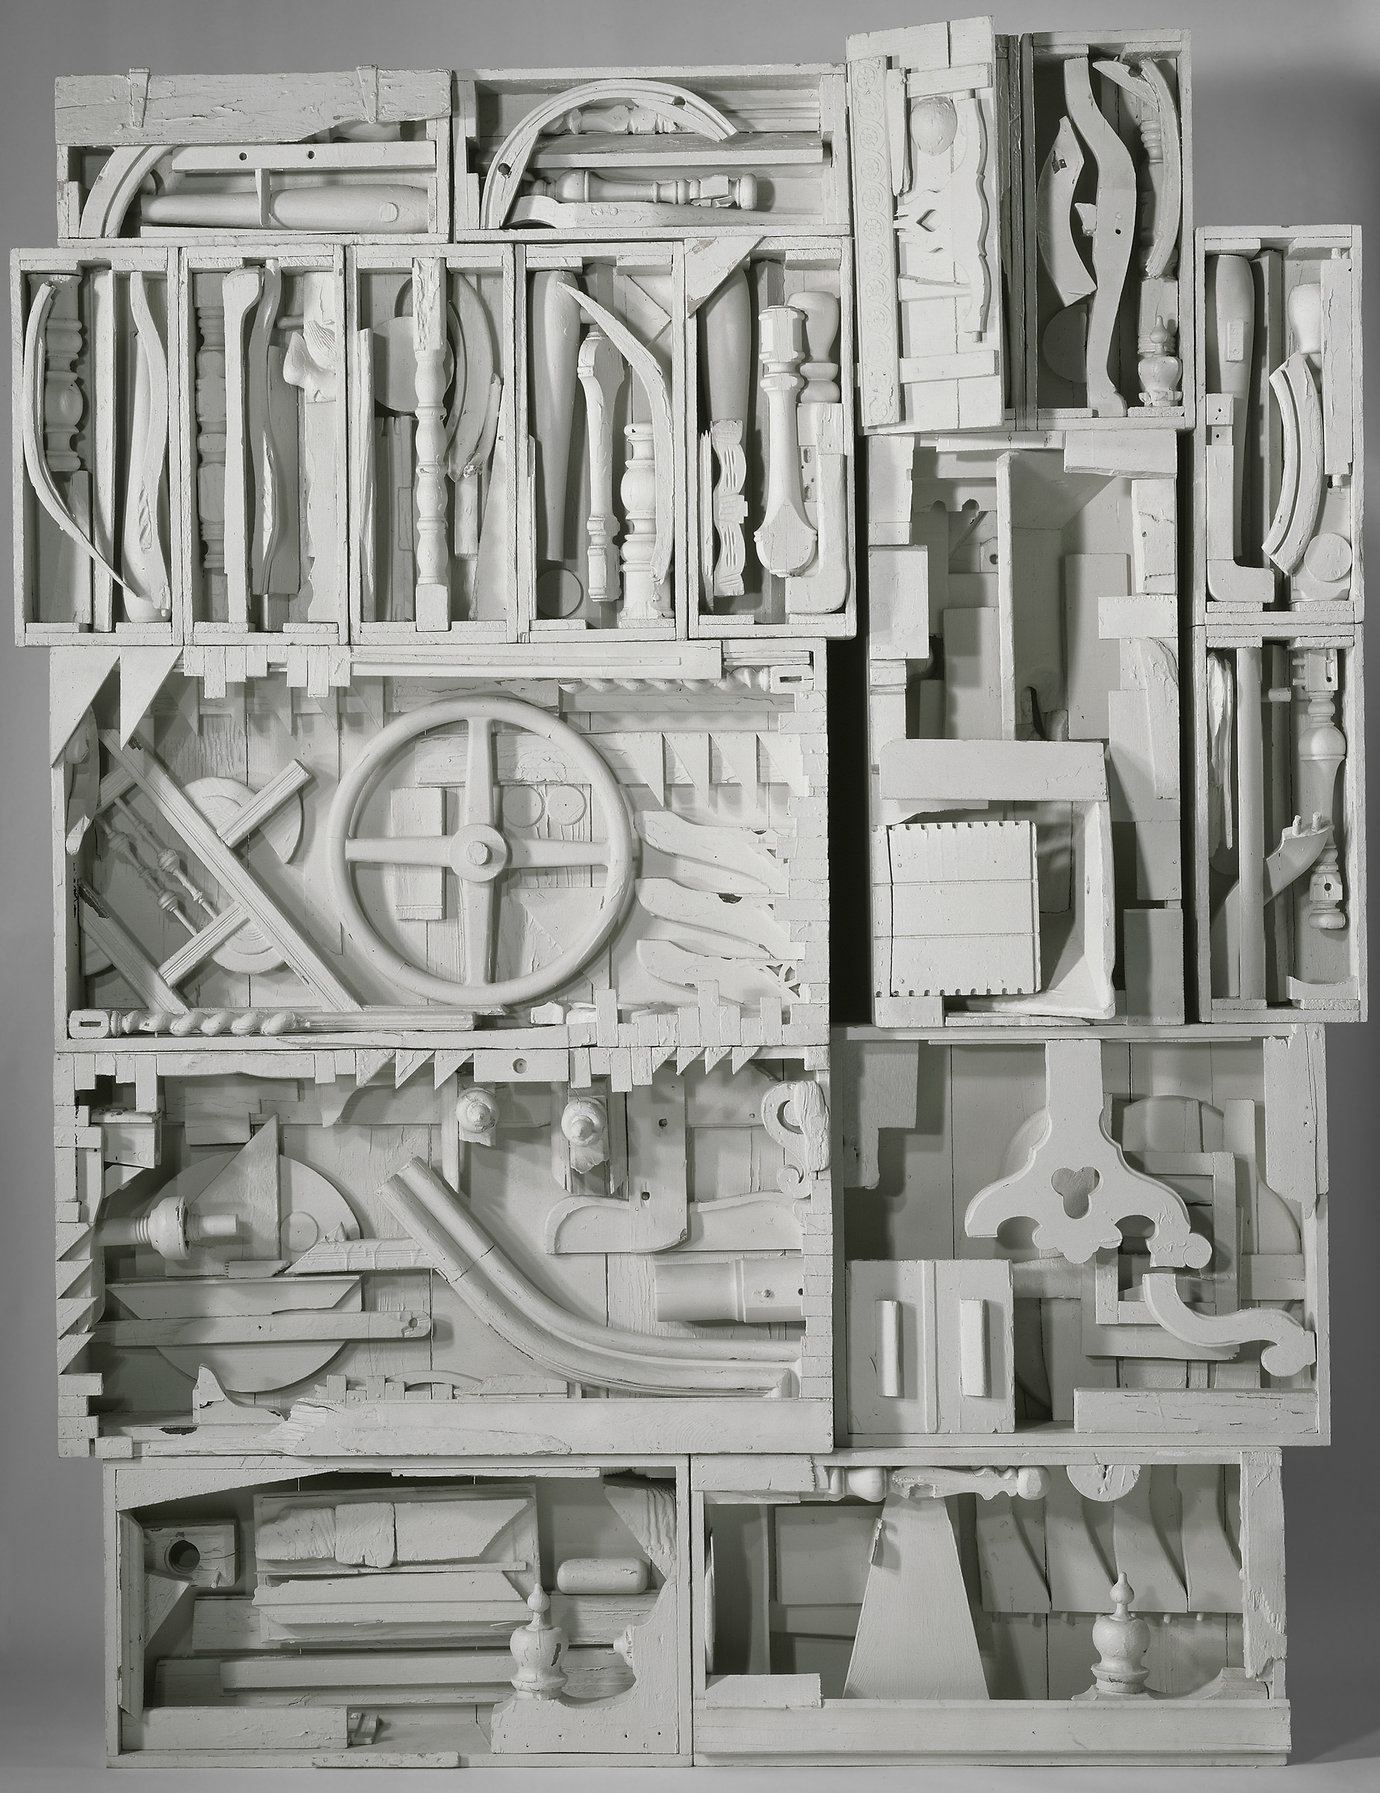 ", 1959-60. Wood painted white, 9' 1"" x 7' 3"" x 1' 1-1/2"" (276.9 x 221 x 34.3 cm)."